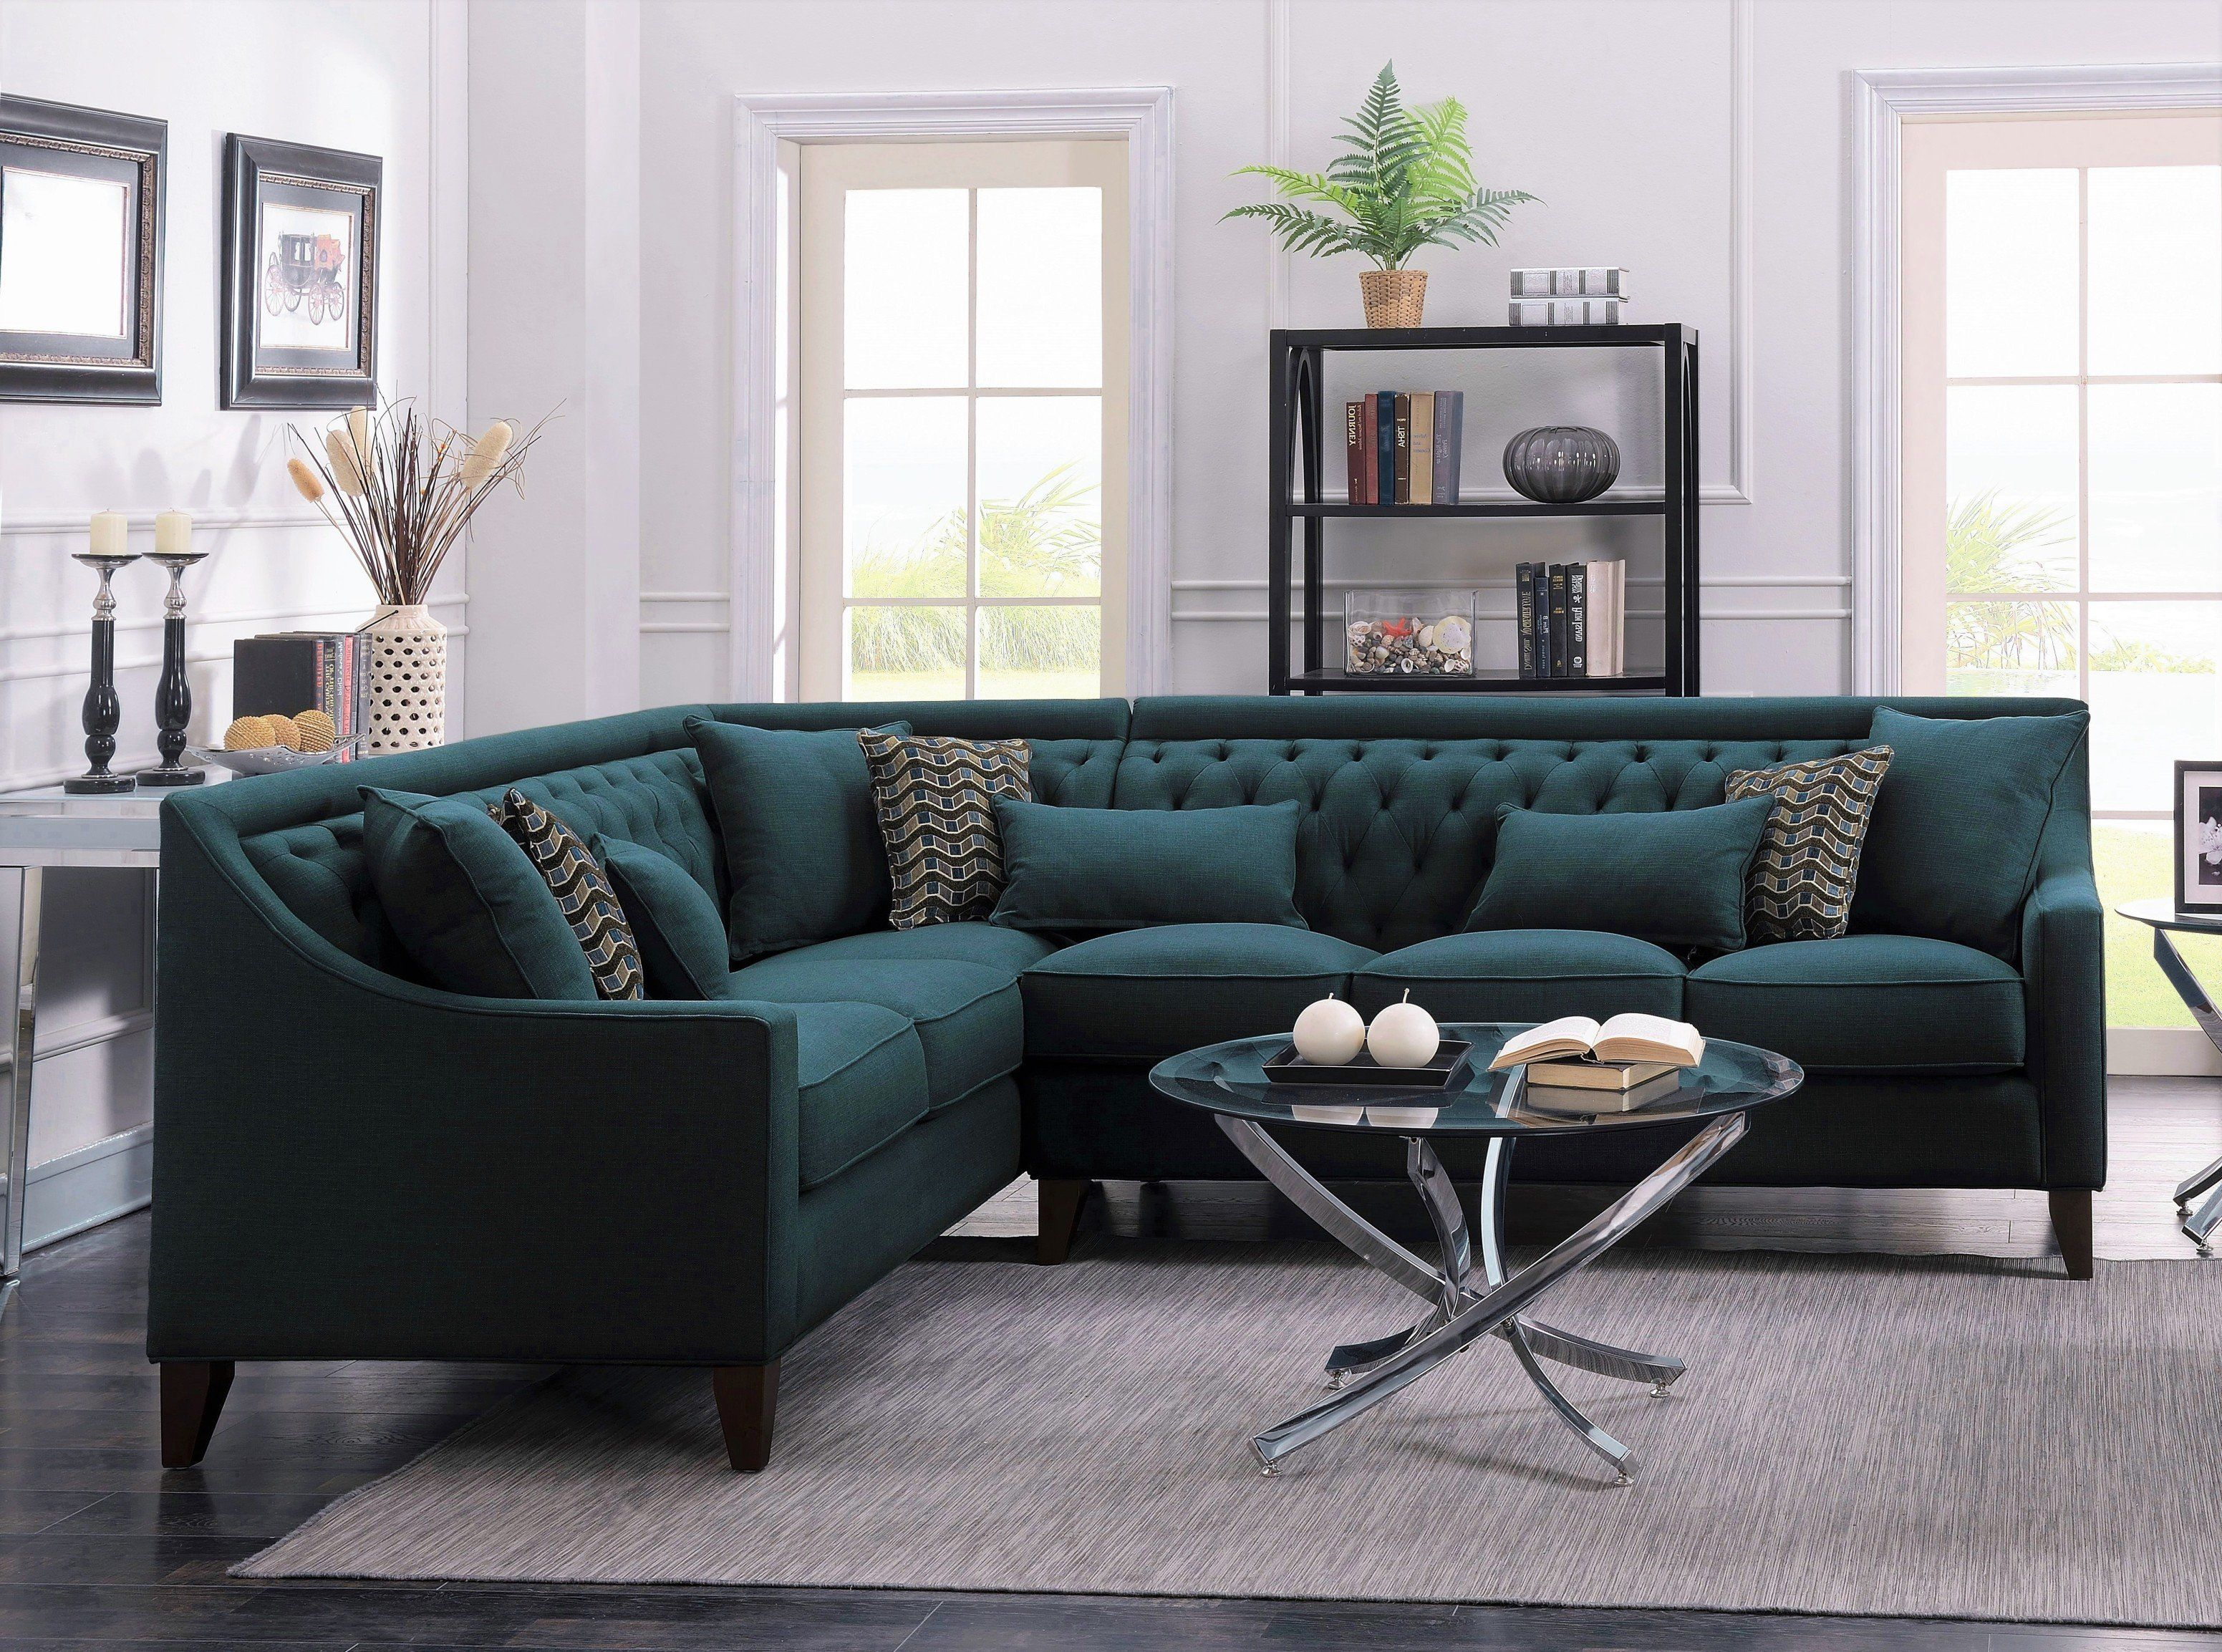 Iconic Home Aberdeen Linen Tufted Left Facing Sectional Sofa Teal Small Living Room Decor Sectional Sofa Living Room Sofa